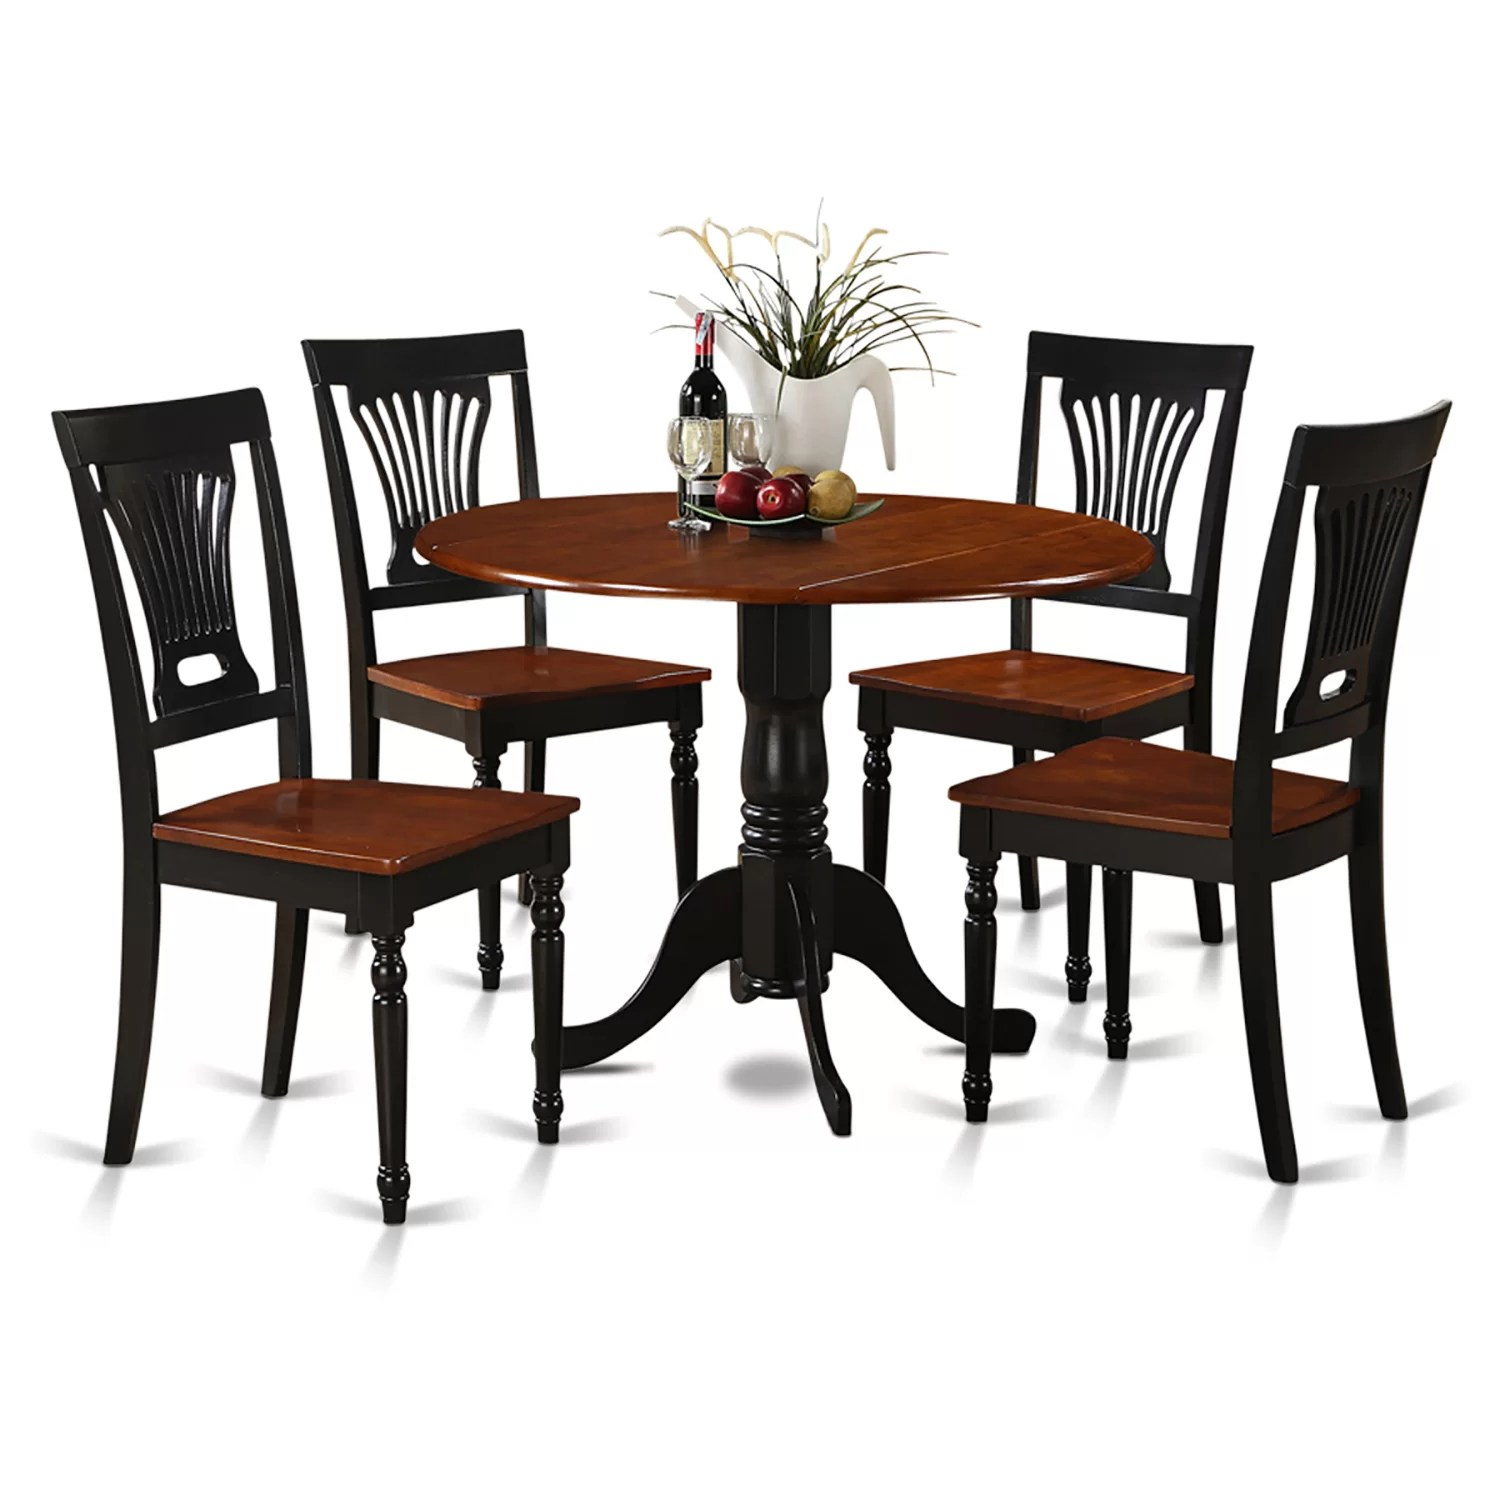 dining table and chairs dublin wicker patio with ottoman wooden importers 5 piece set reviews wayfair